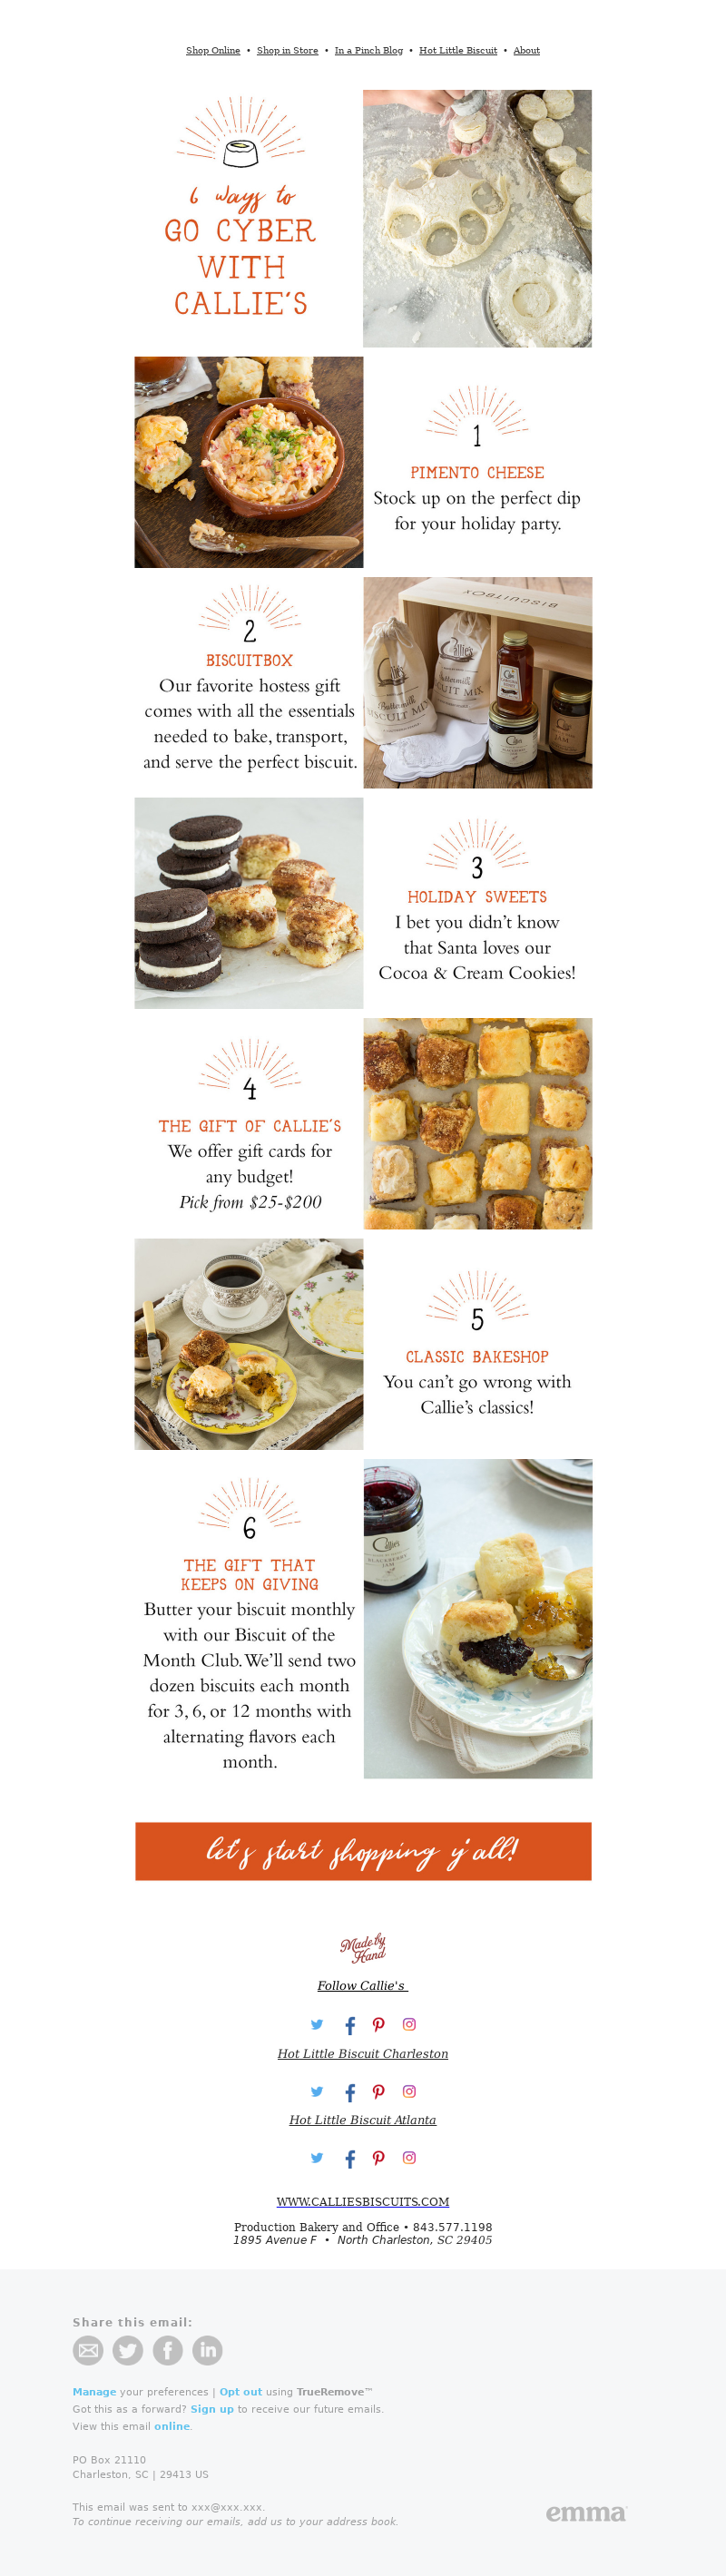 Cyber Monday email campaign by Callie's Charleston Biscuits